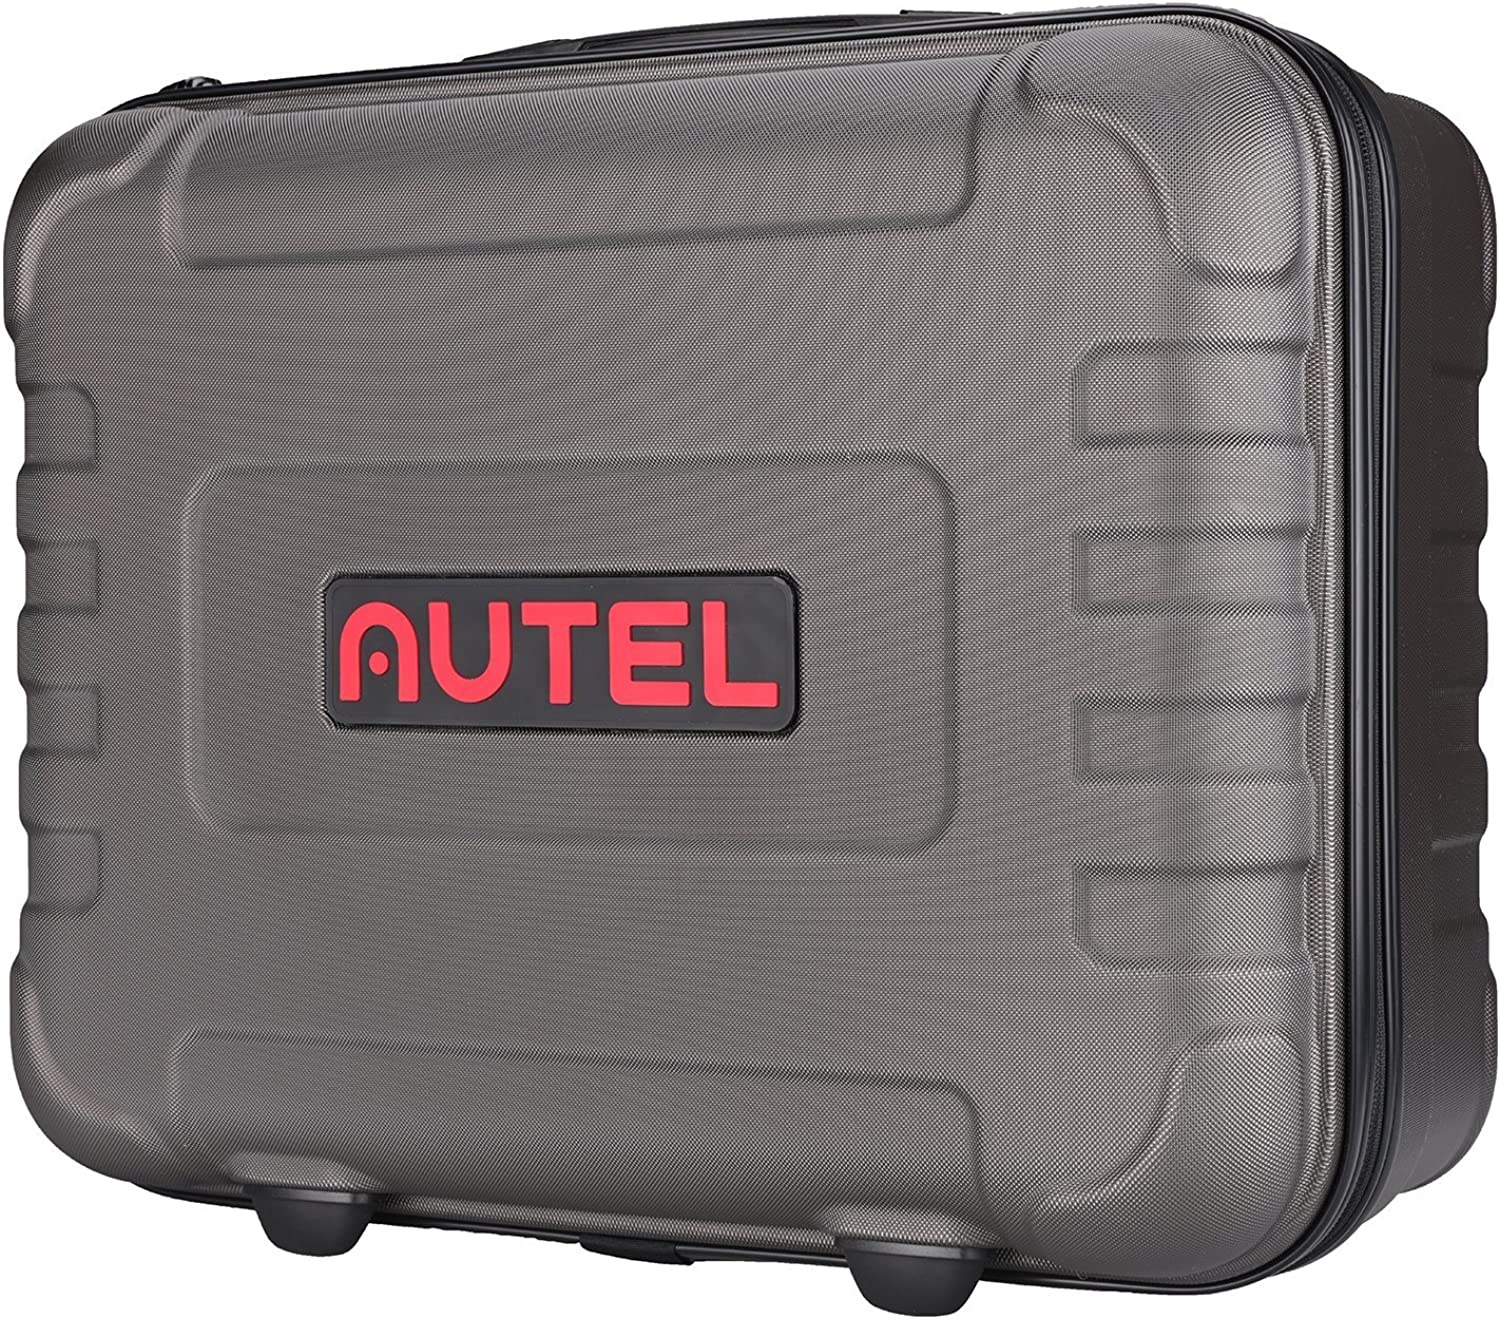 Autel Robotics Carrying Case for use with XStar Premium and XStar Drones, Grey